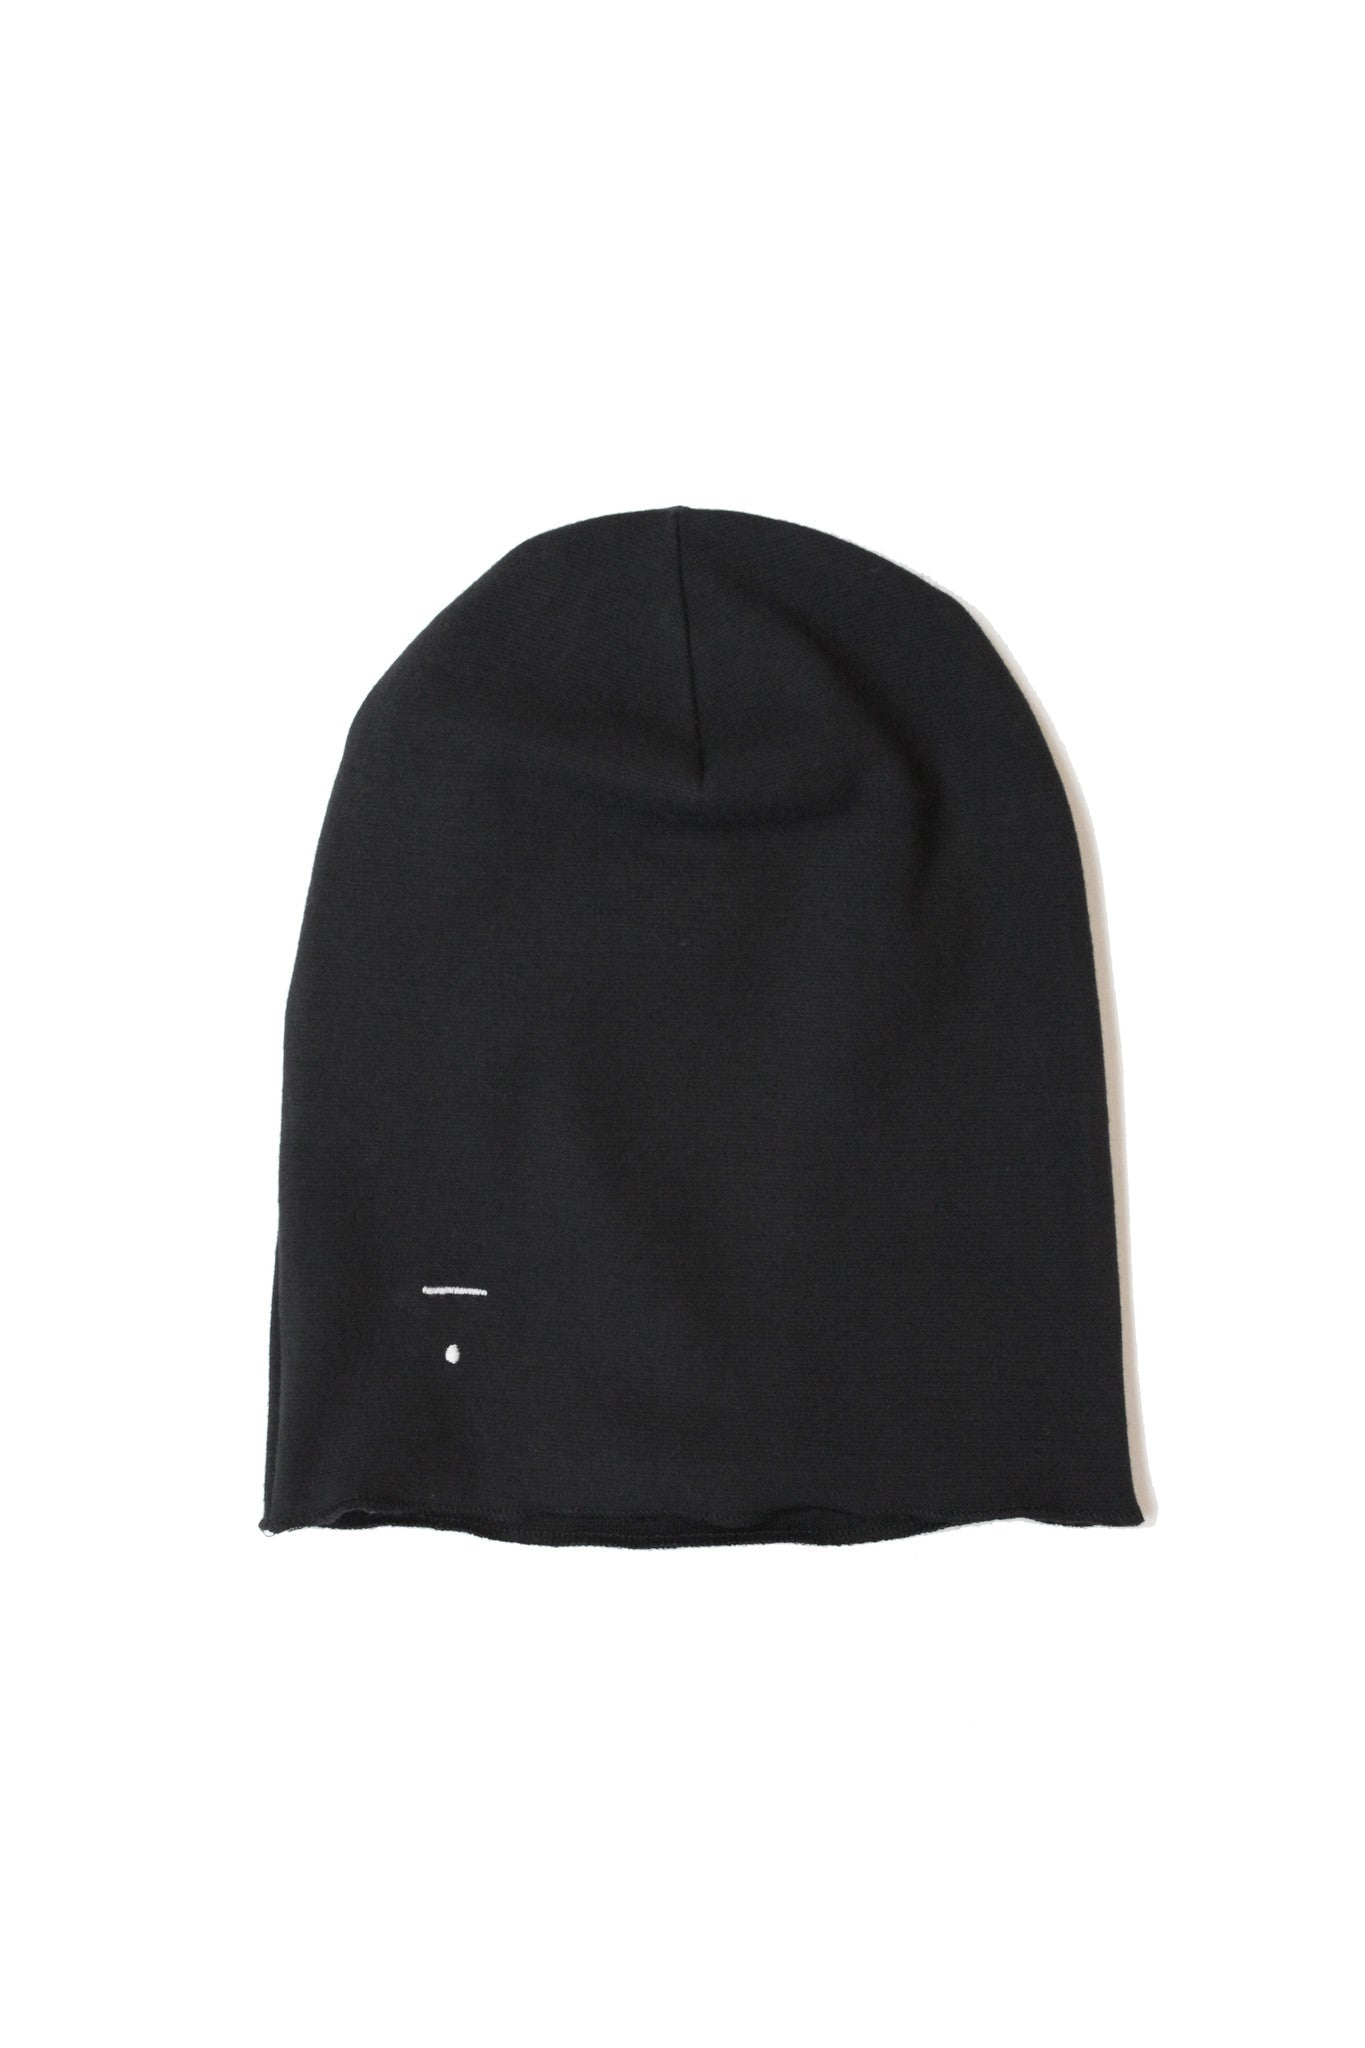 Gray Label Nearly Black Beanie - Ladida